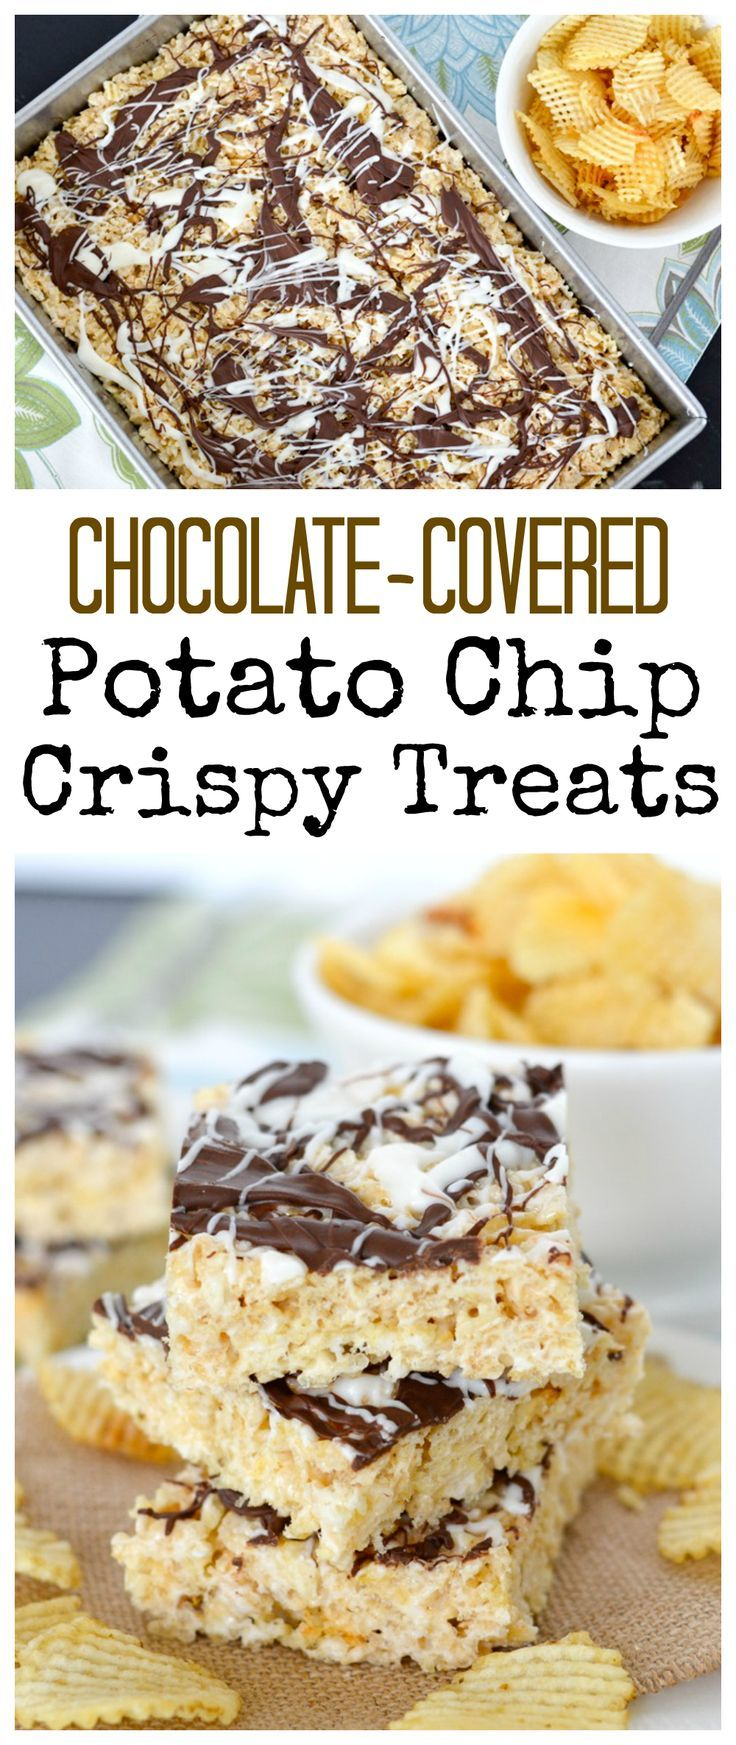 These Chocolate-Covered Potato Chip Crispy Treats are the perfect combo of sweet and salty! #crispytreats